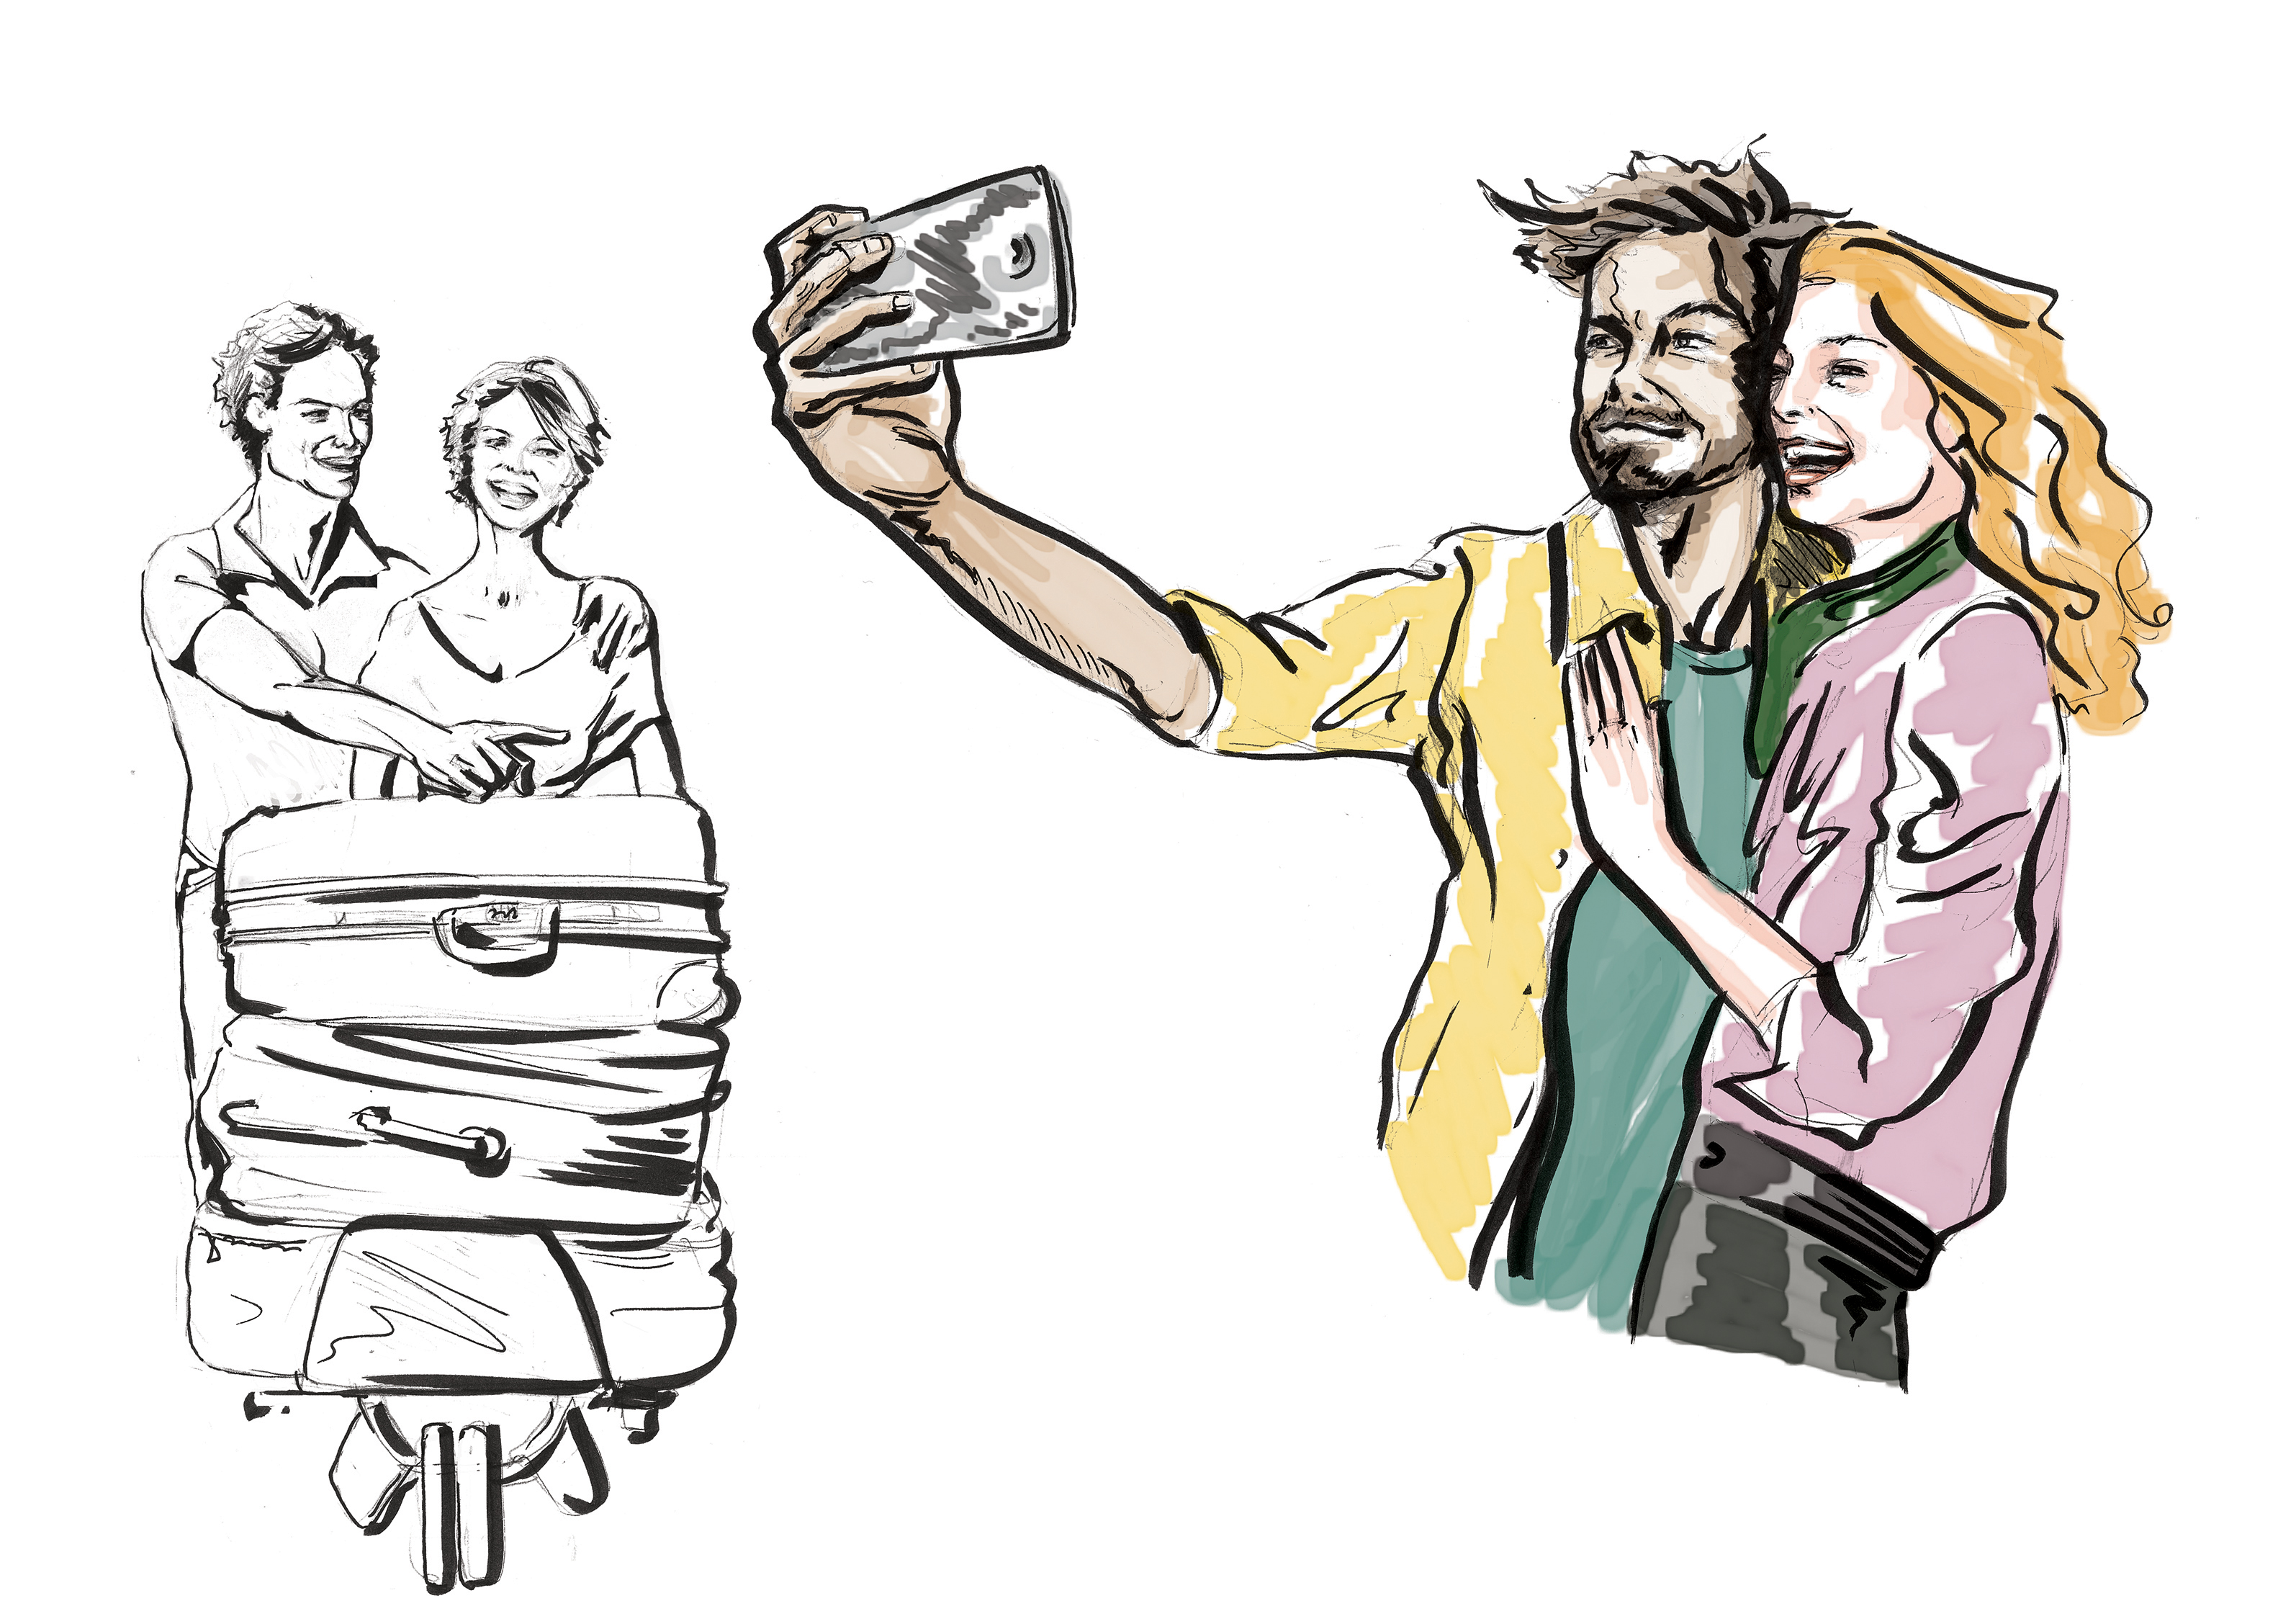 Sketchpad: People on the Airport | pencil and marker on paper